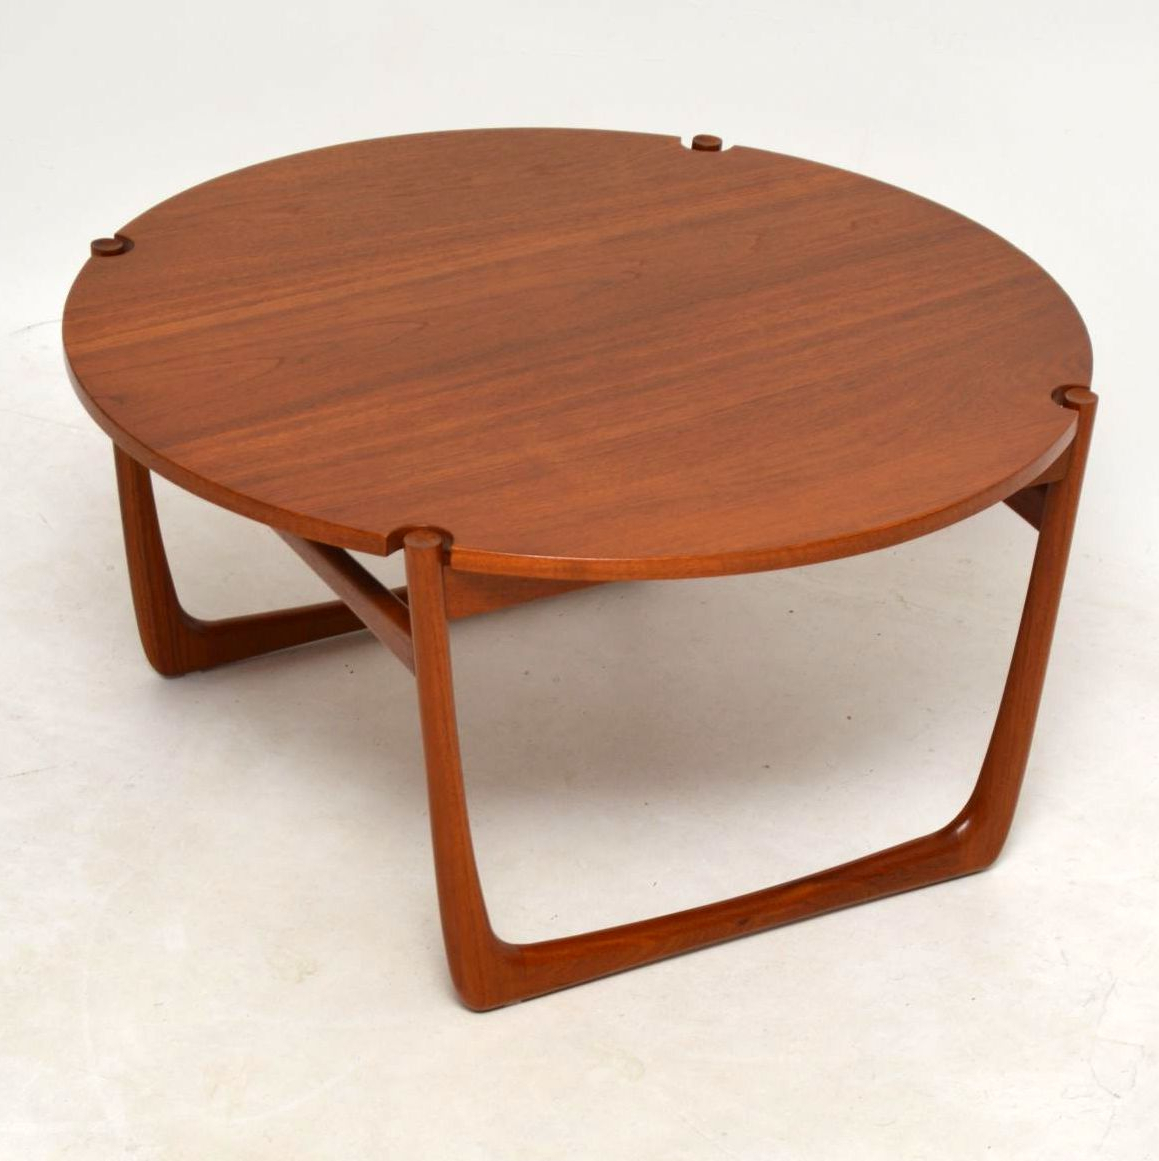 Danish Teak Coffee Tablepeter Hvit & Orla Mølgaard Nielsen Inside Most Current Round Teak Coffee Tables (View 6 of 20)